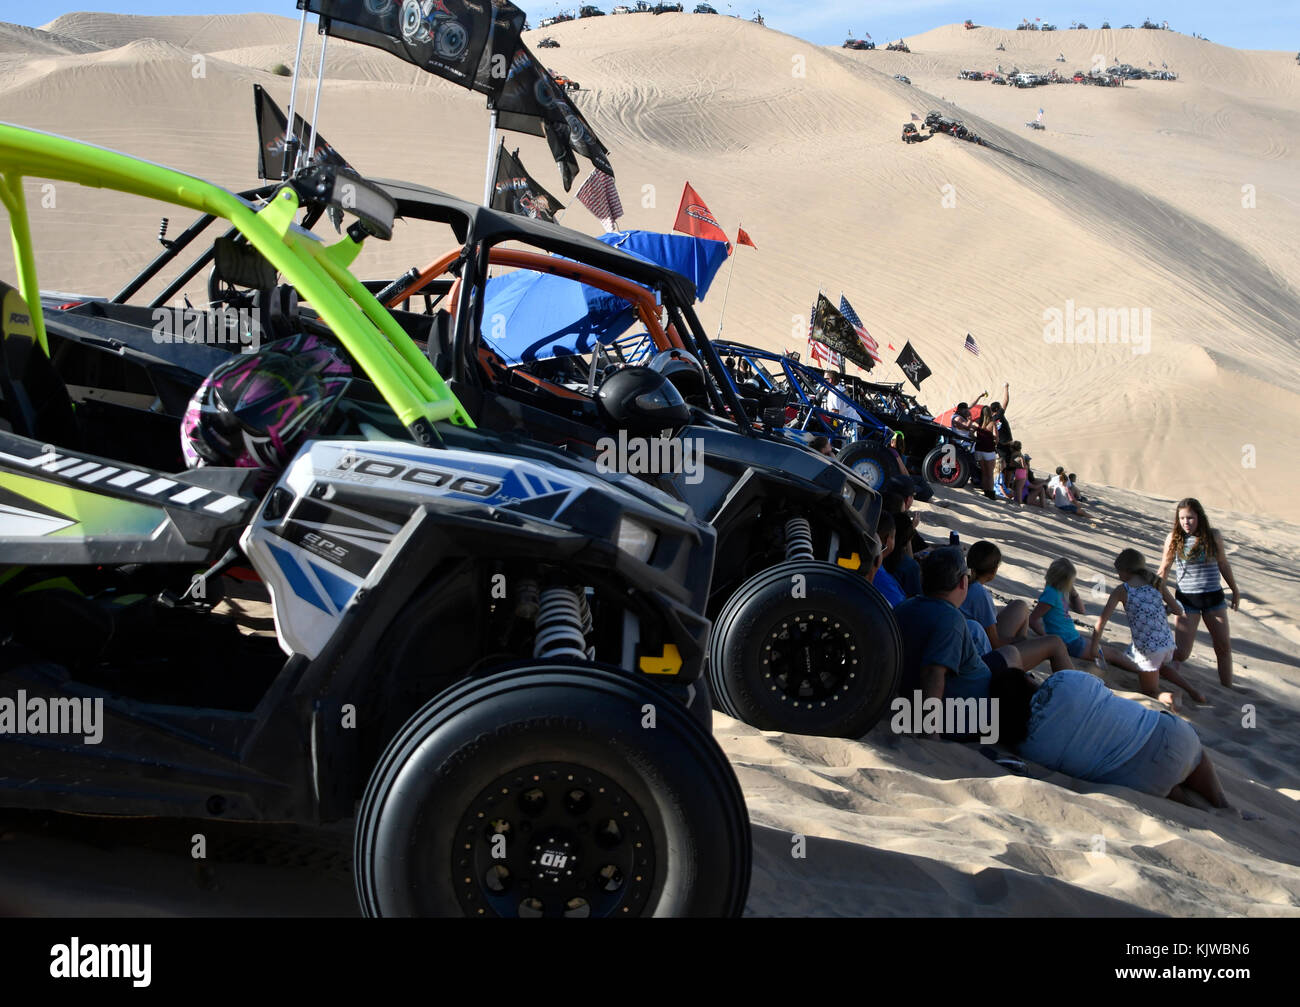 Nov Glamis CA Offroaders Look For Any Shade In The - Glamis dunes weather